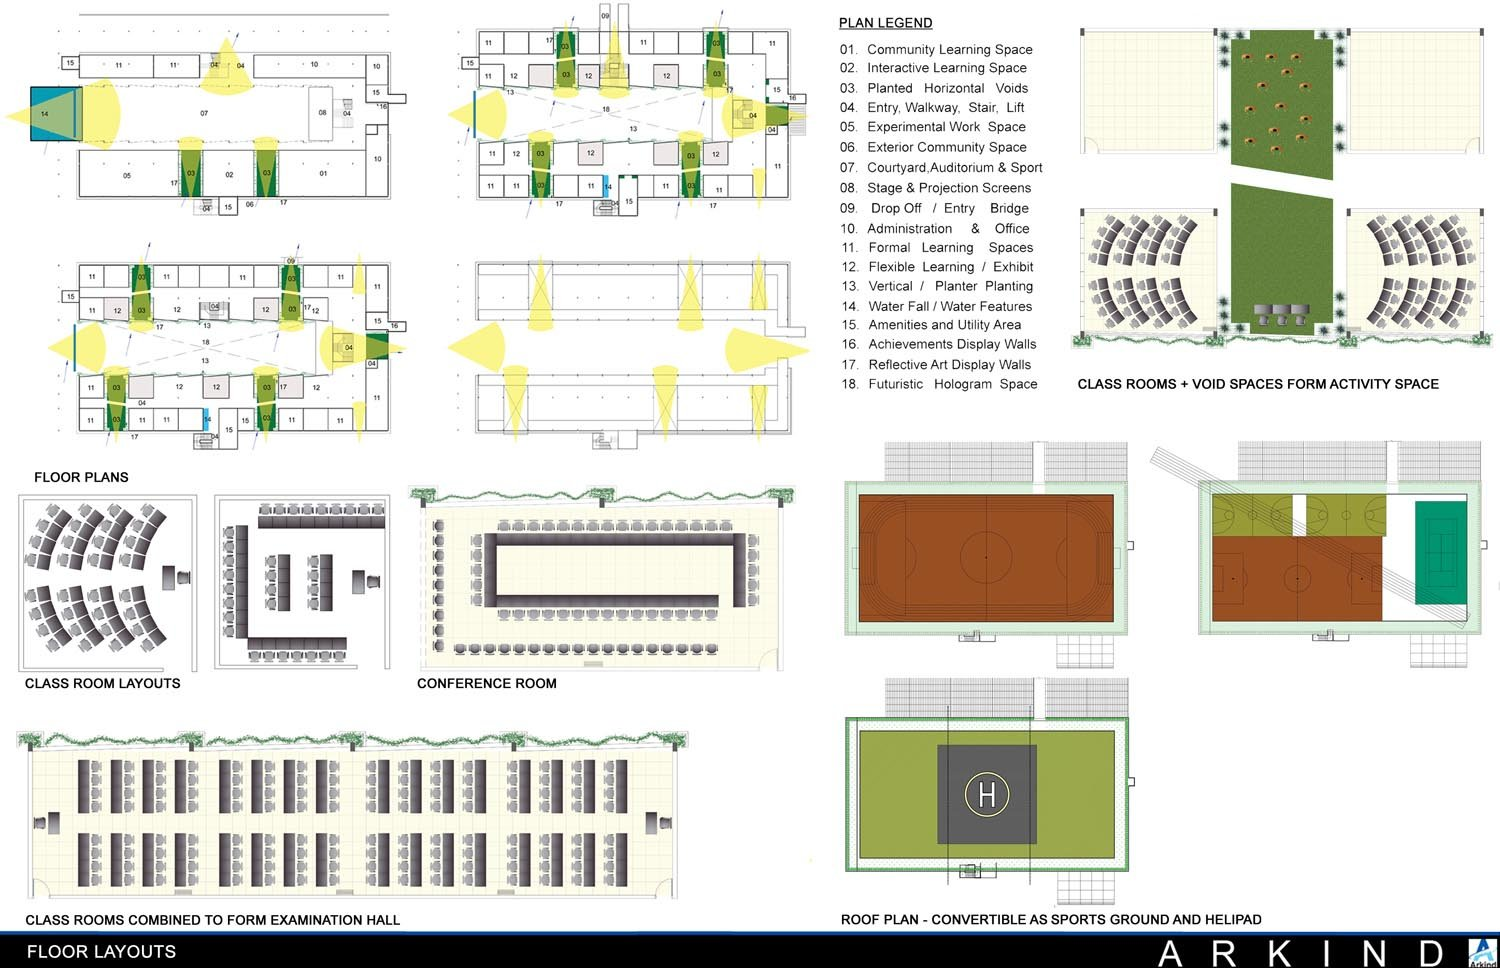 Key Plans and Layouts }